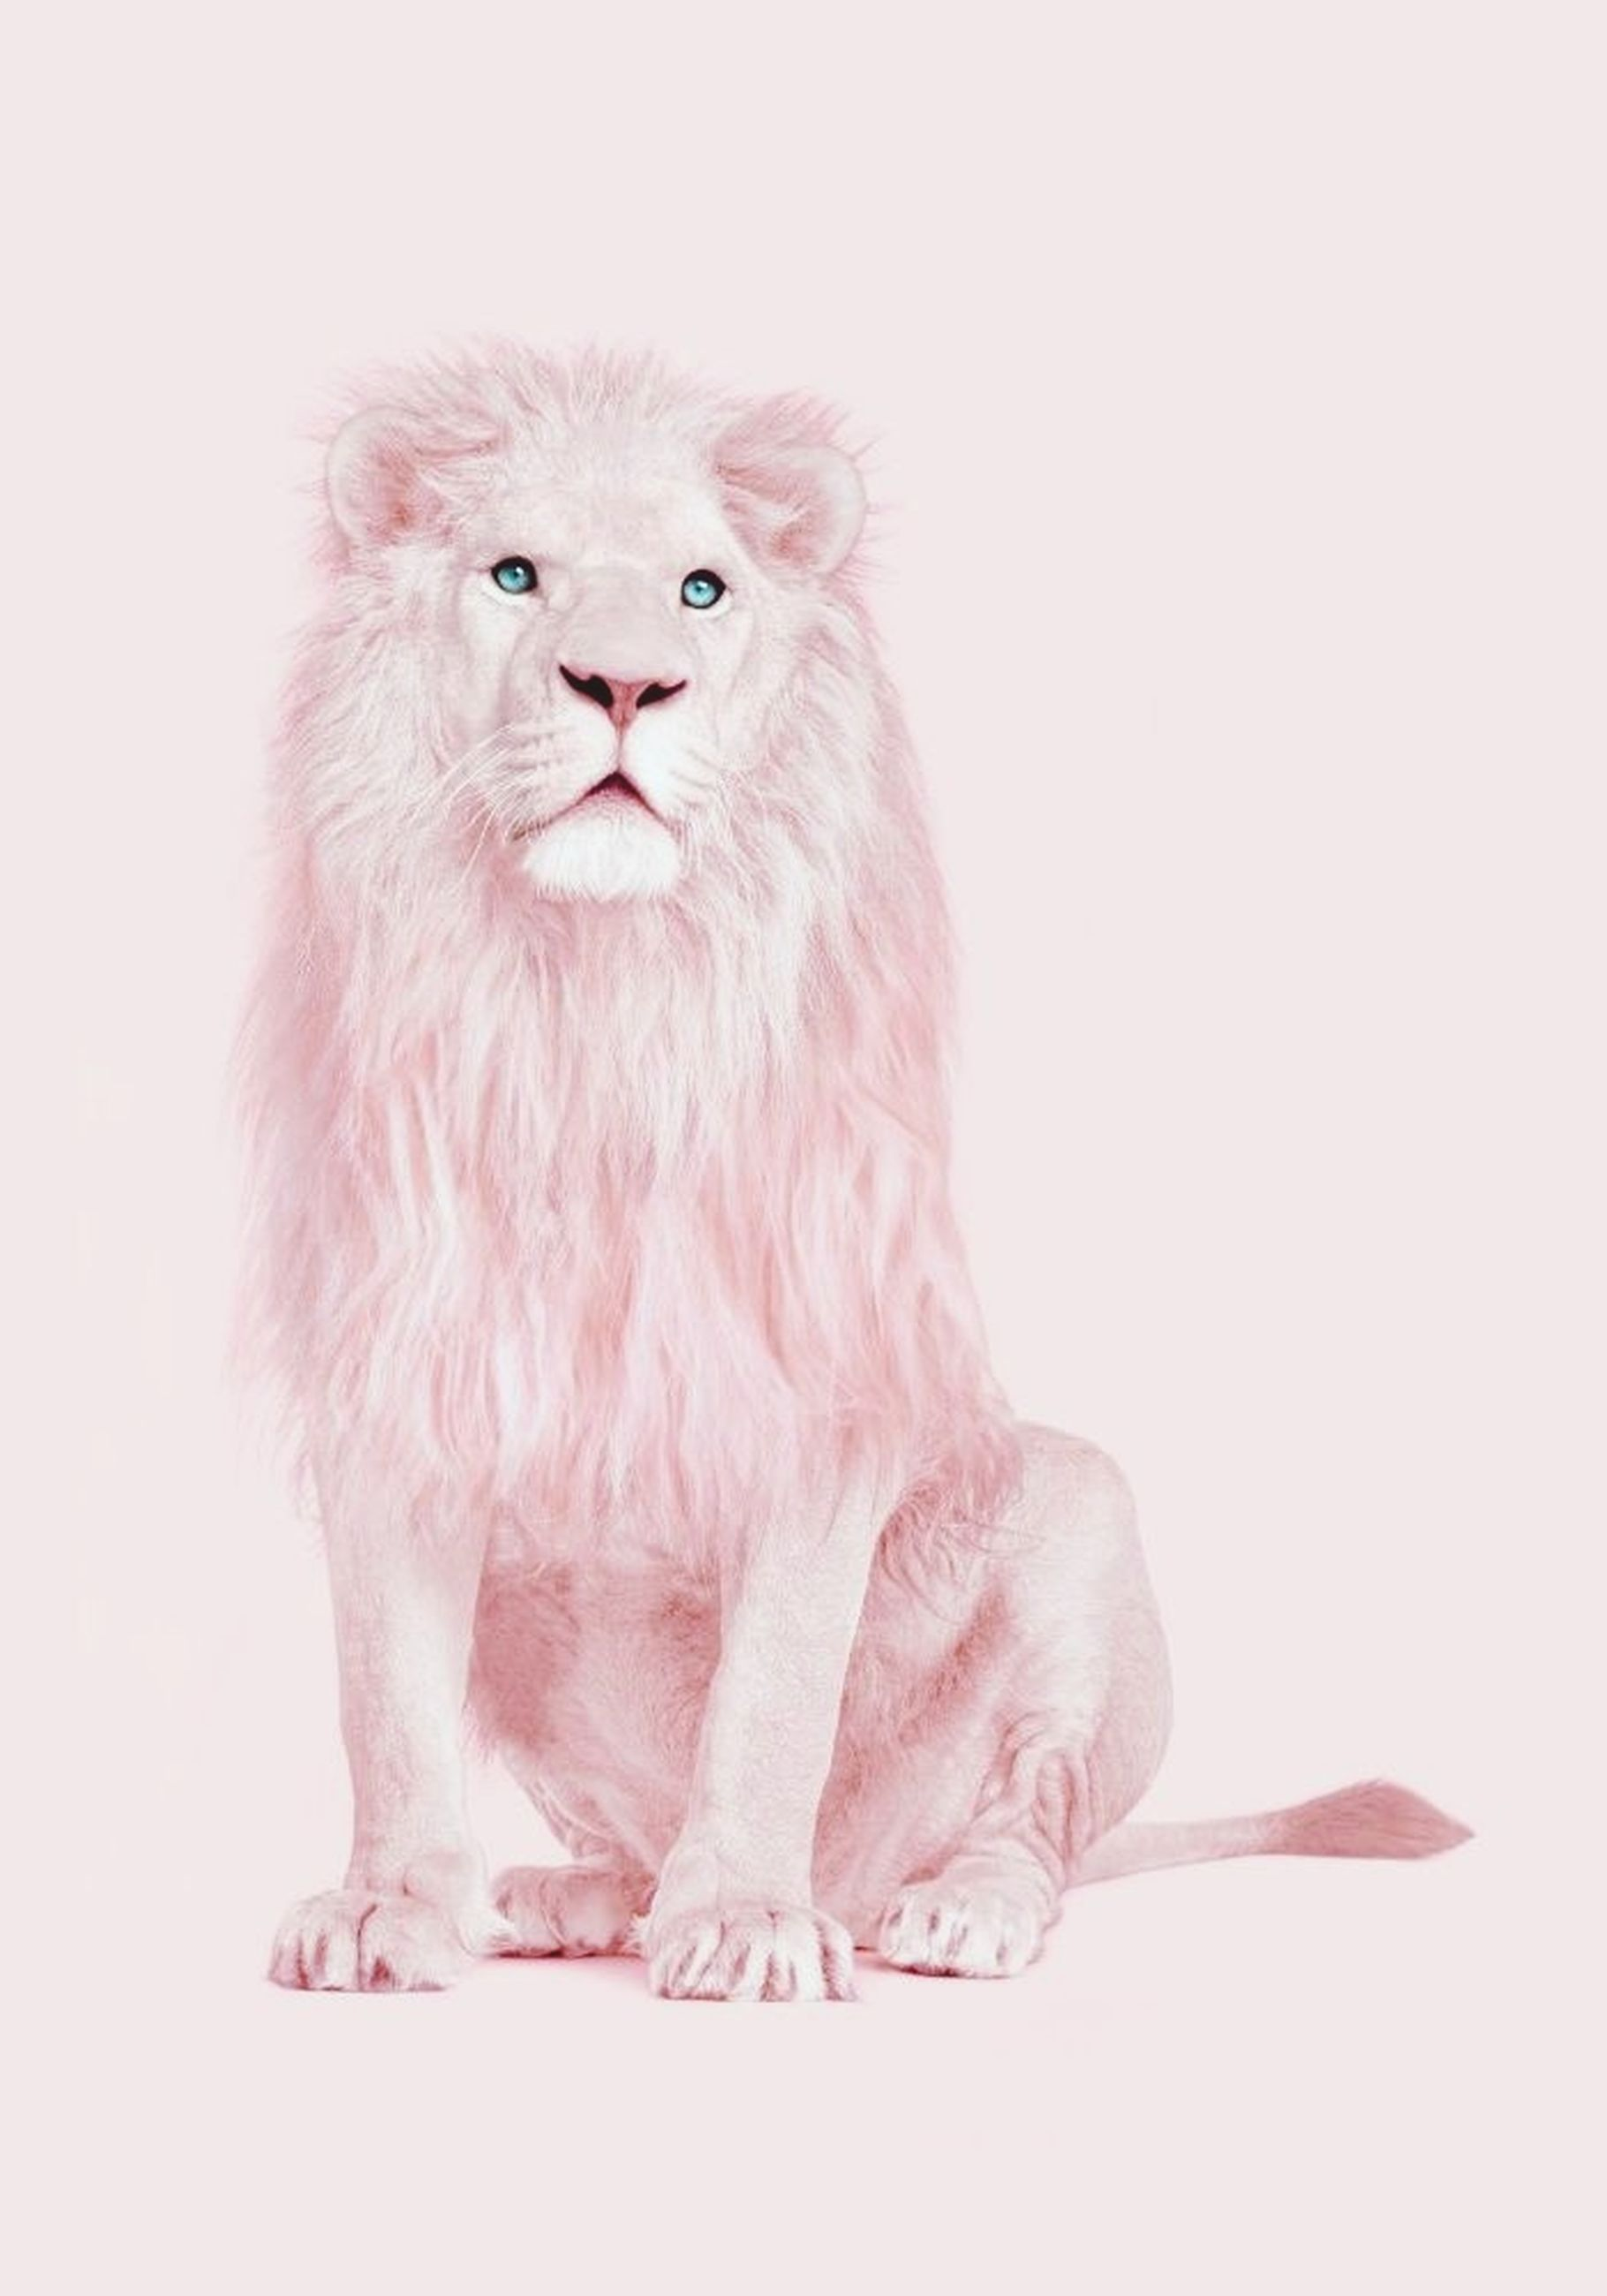 one animal, pets, studio shot, domestic cat, feline, domestic animals, pink color, animal themes, portrait, white background, full length, looking at camera, mammal, persian cat, no people, close-up